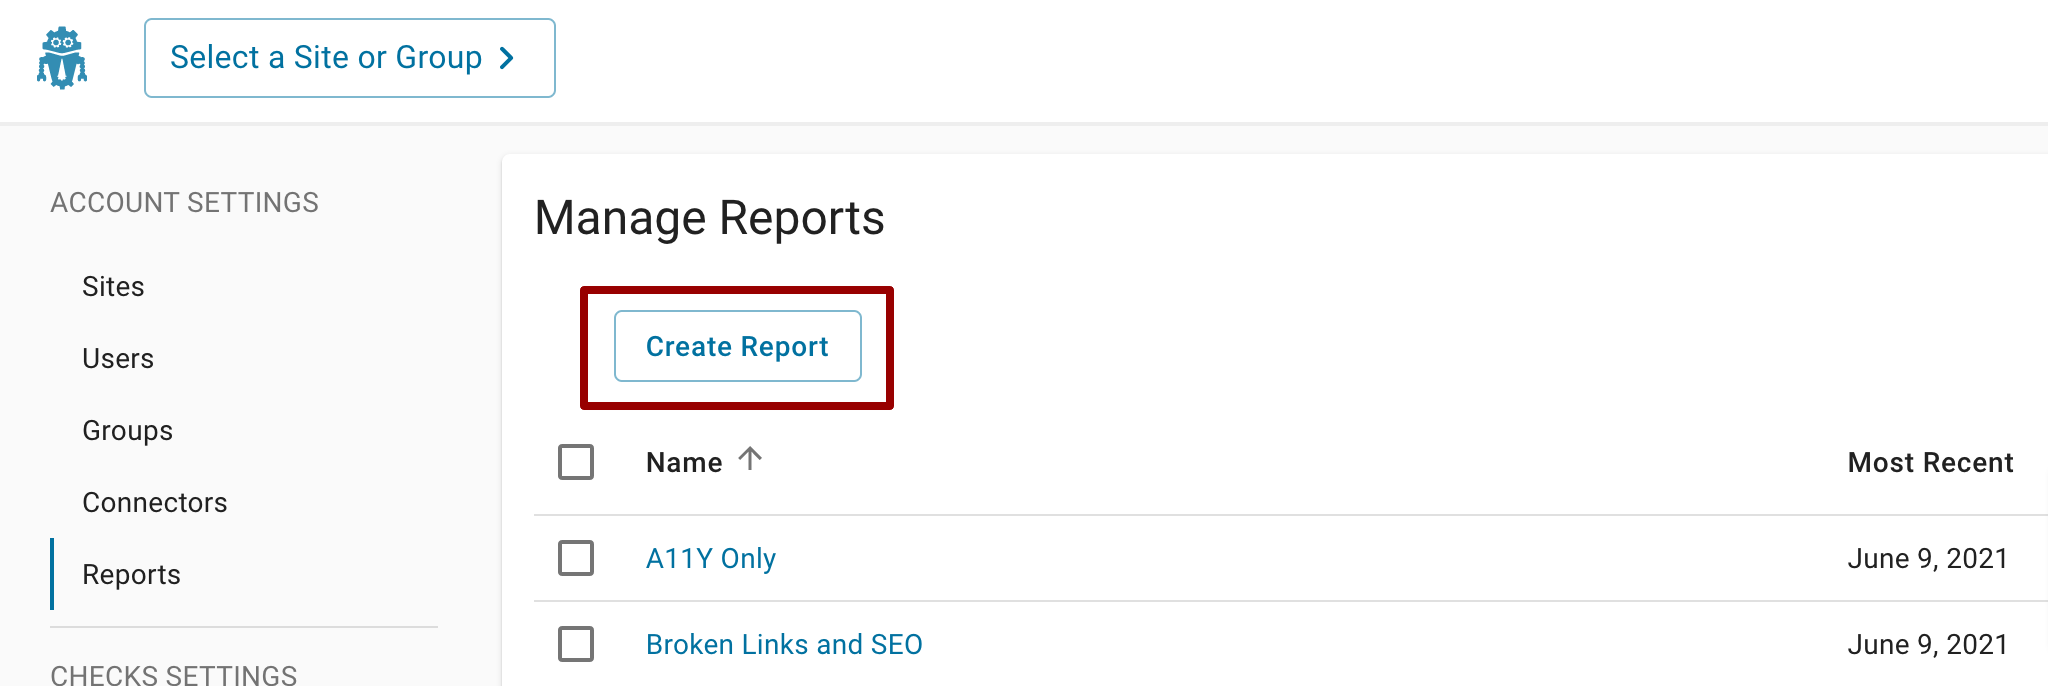 On the Manage Reports page, a red box is around Create Report button.